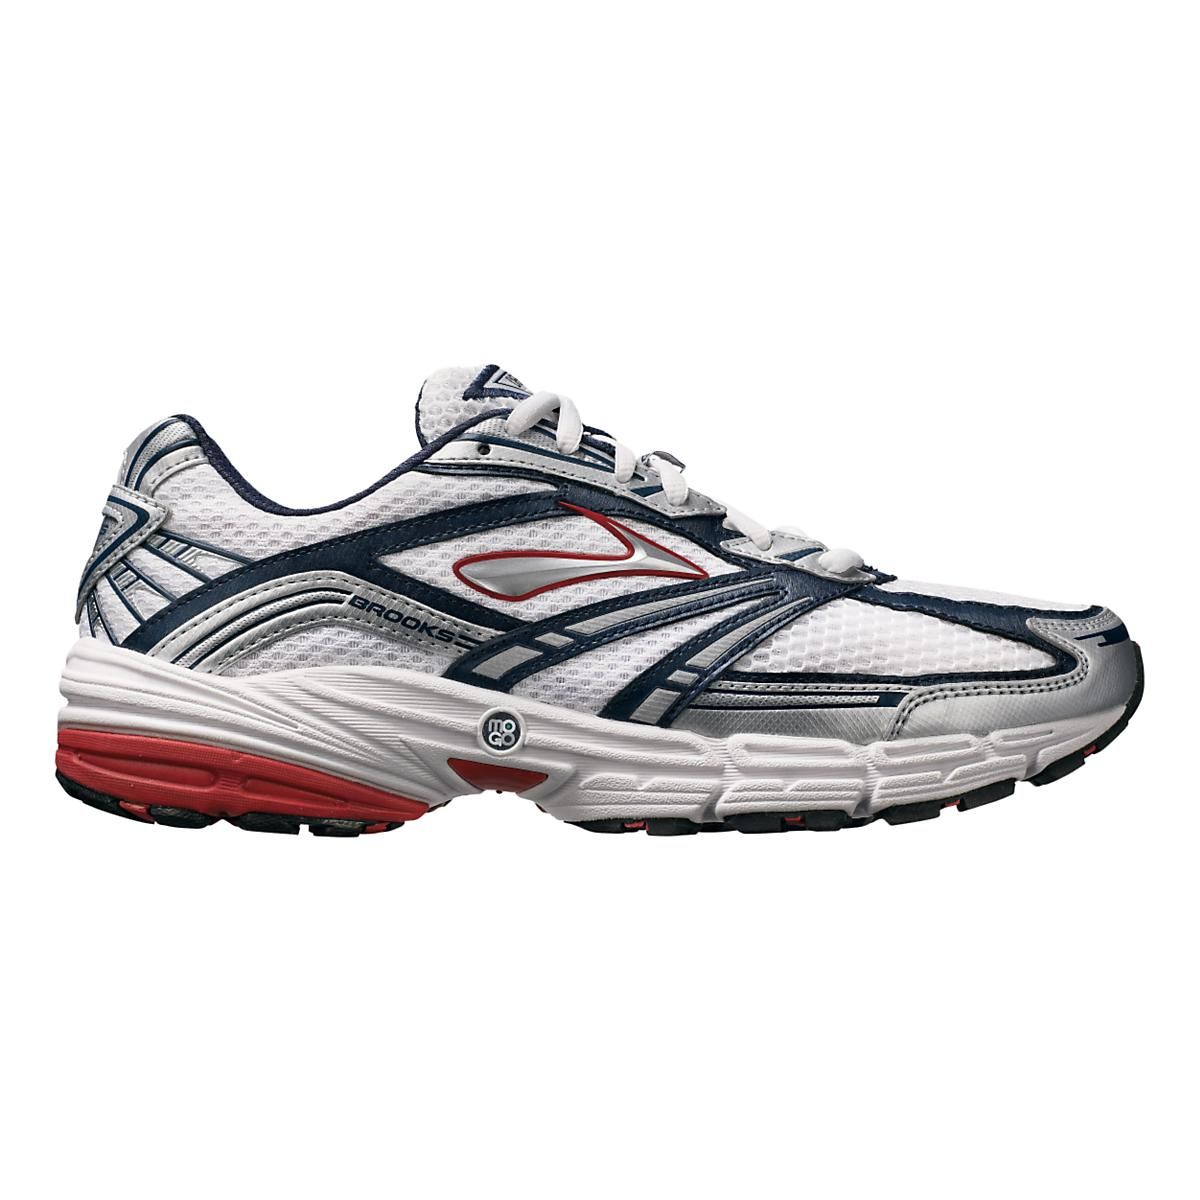 10995bc0c70d3 Mens Brooks Defyance 3 Running Shoe at Road Runner Sports